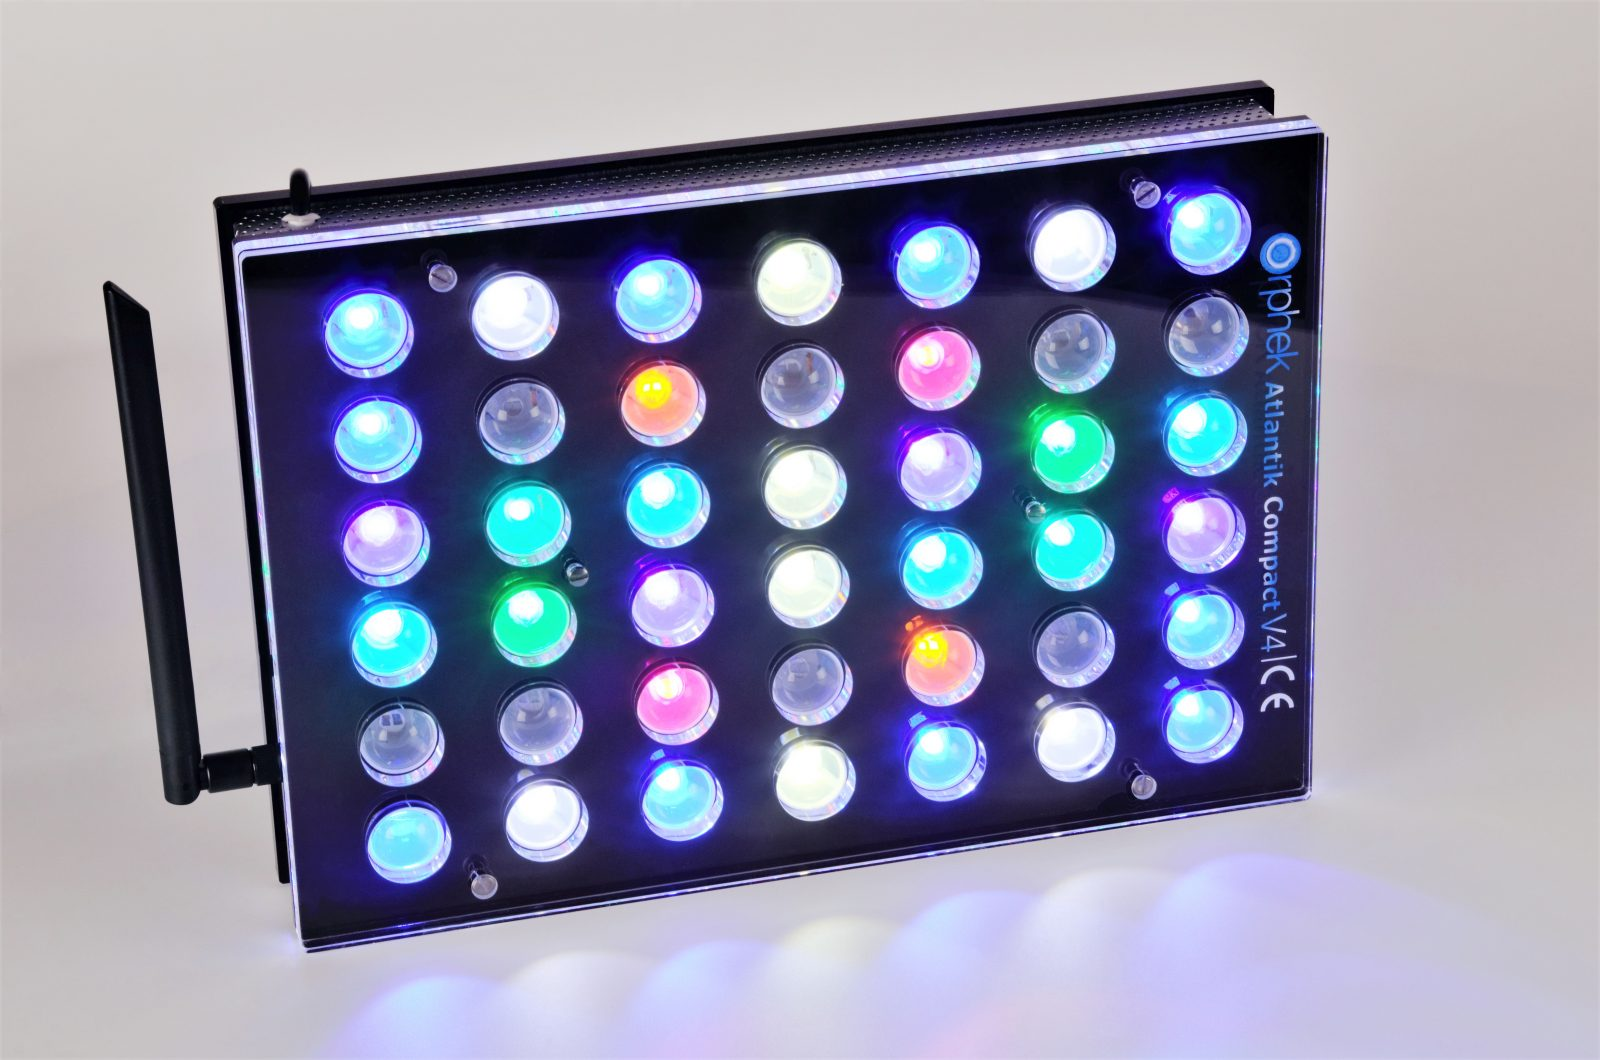 Orphek-Aquarium-LED-Lighting-Atlantik -Compact-V4-light -on -channel 1+2+4